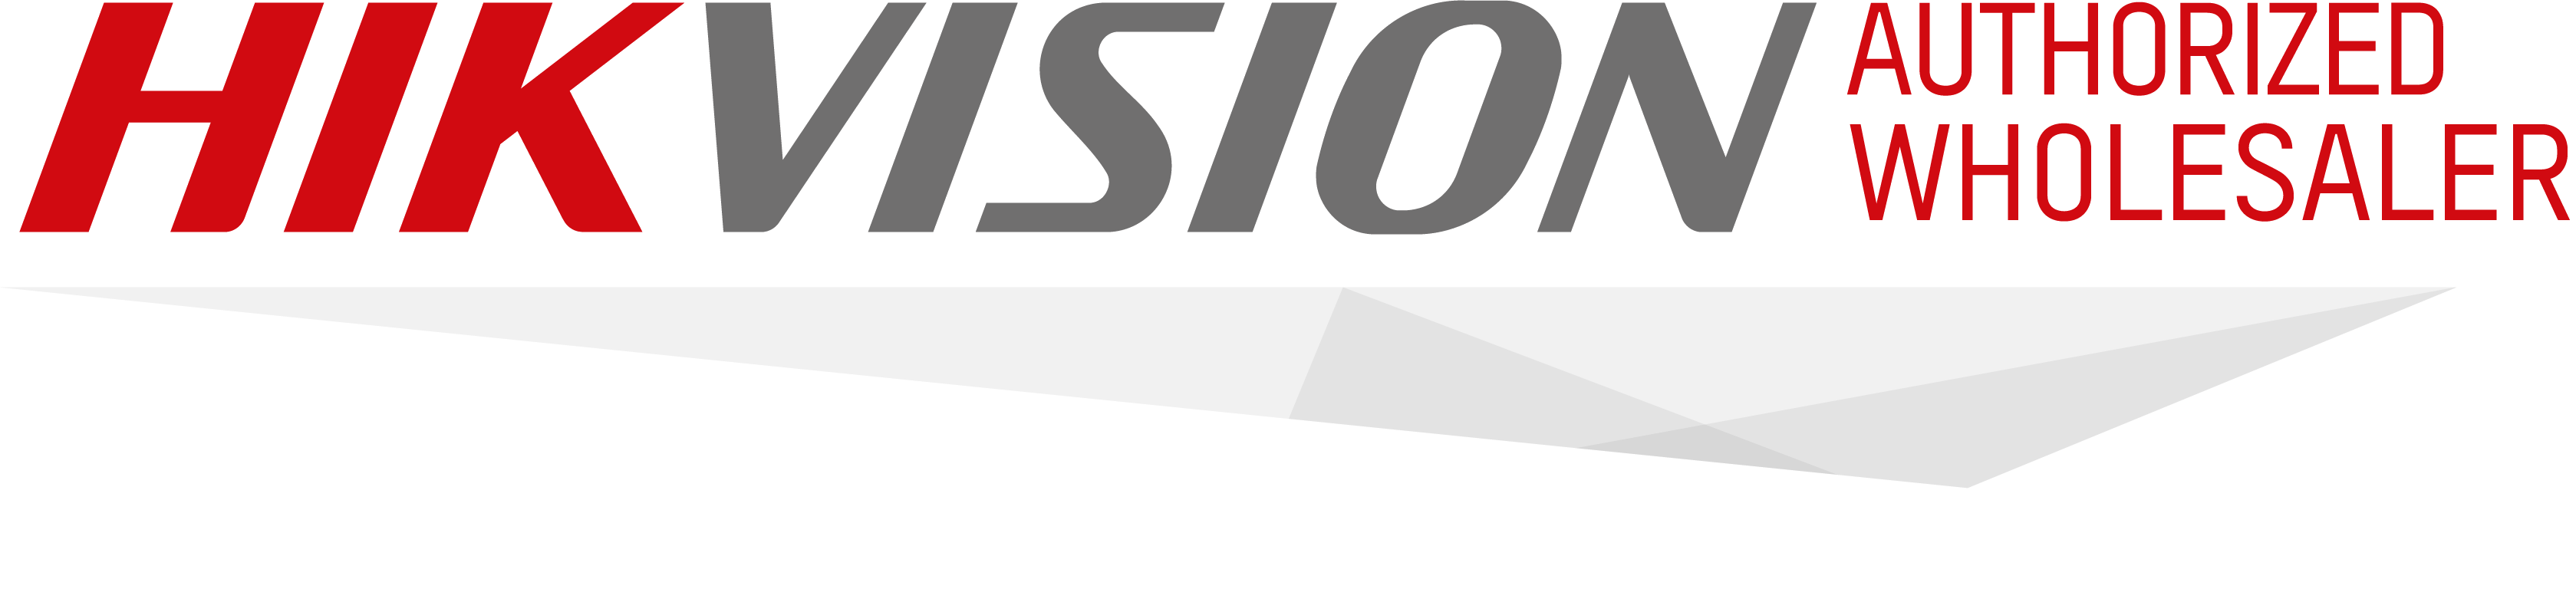 HikVision Authorised Wholesaler